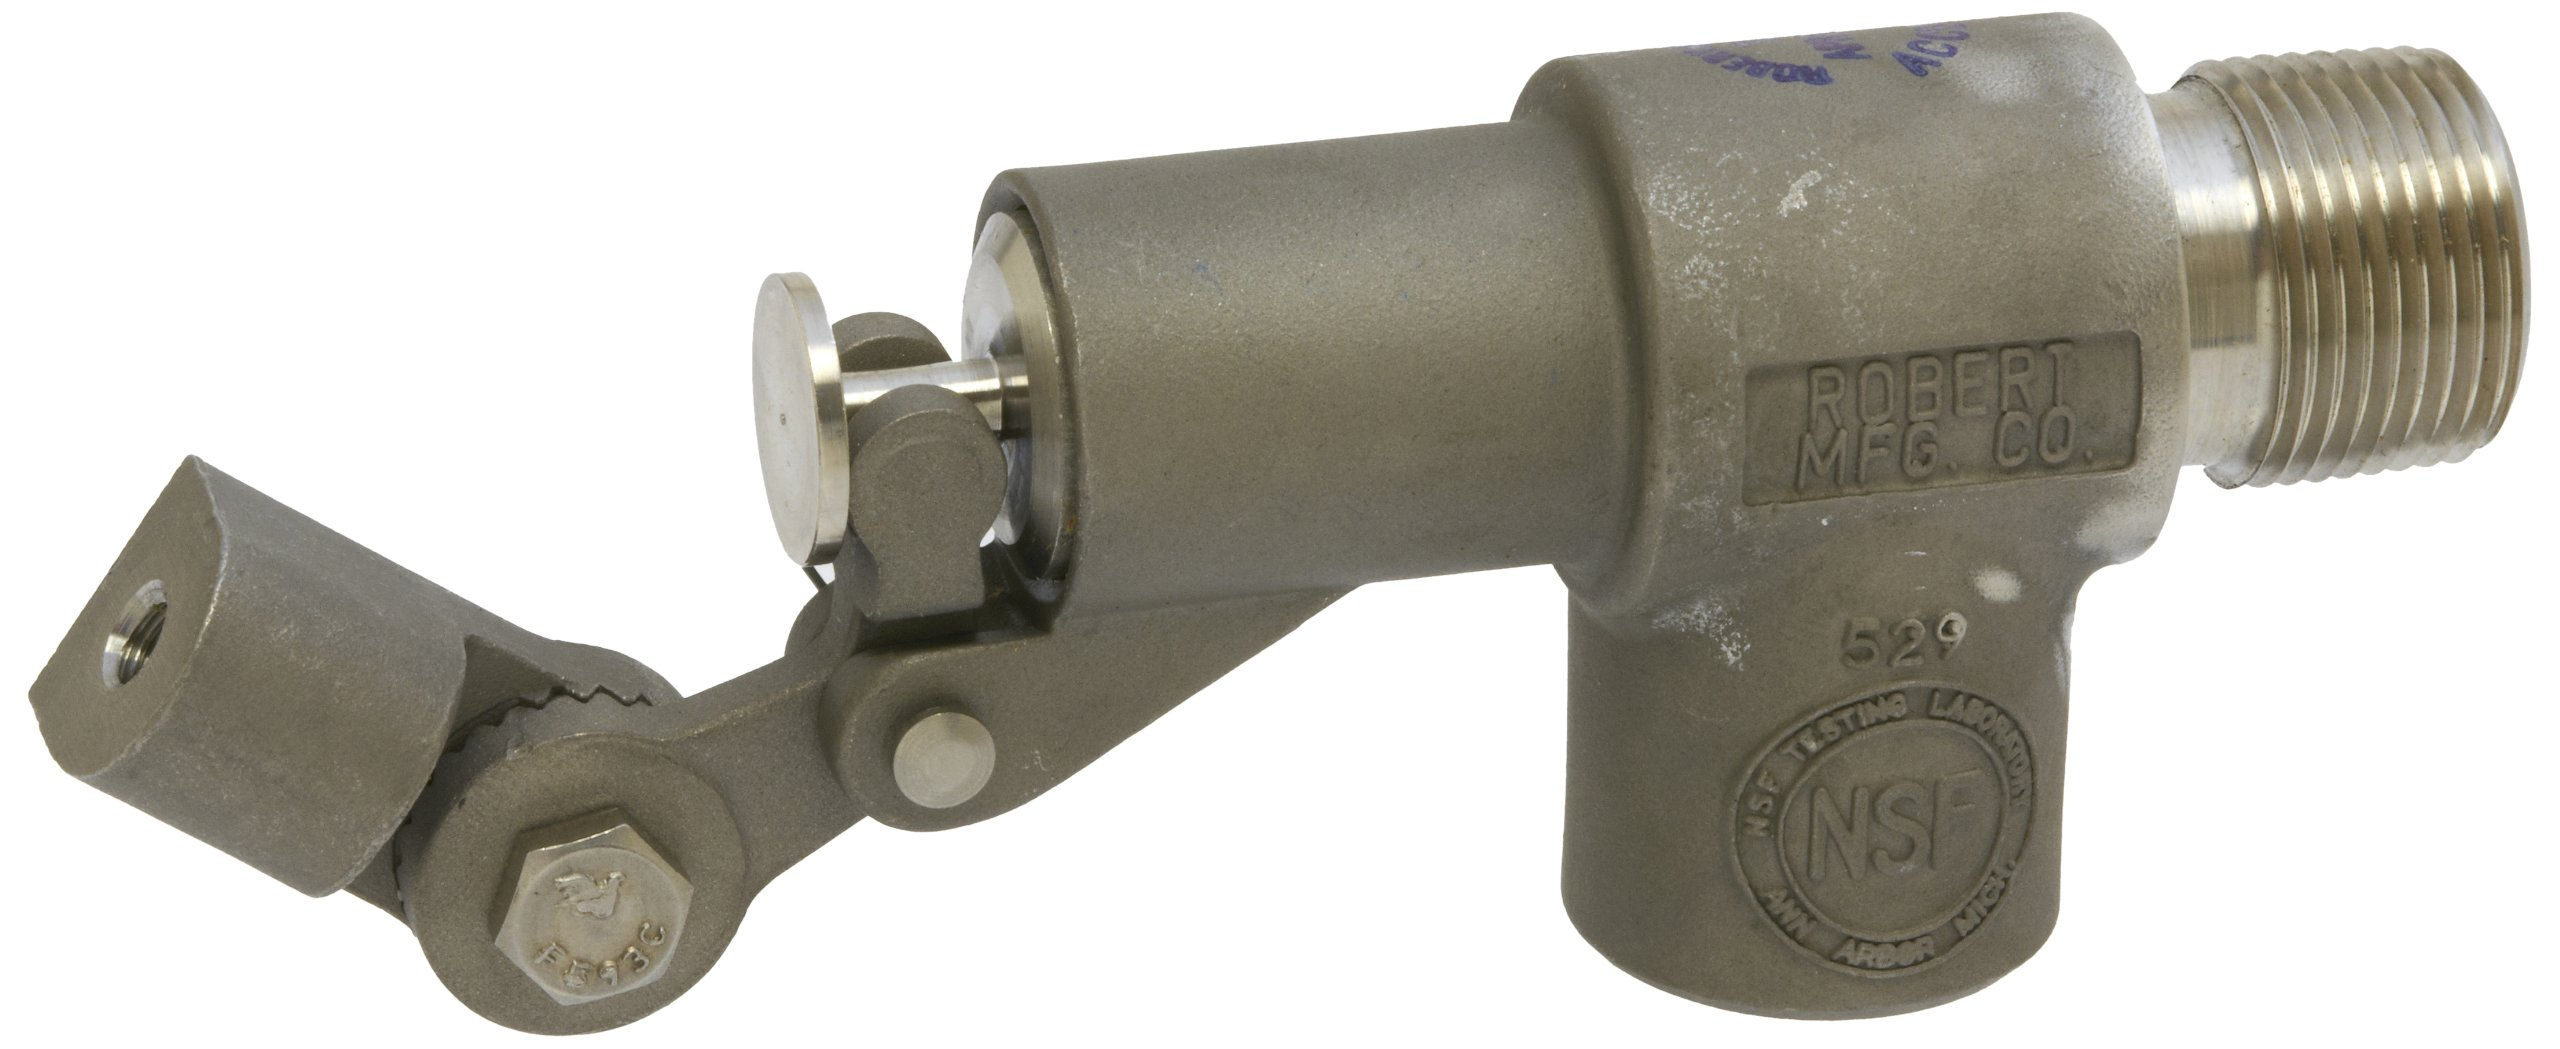 Robert Manufacturing R1361 Series Bob 316 Stainless Steel Float Valve Assembly with Stem, PTFE Disc and Cup, 3/4'' NPT Male Inlet x 3/4'' NPT Female Outlet, 85 psi Pressure